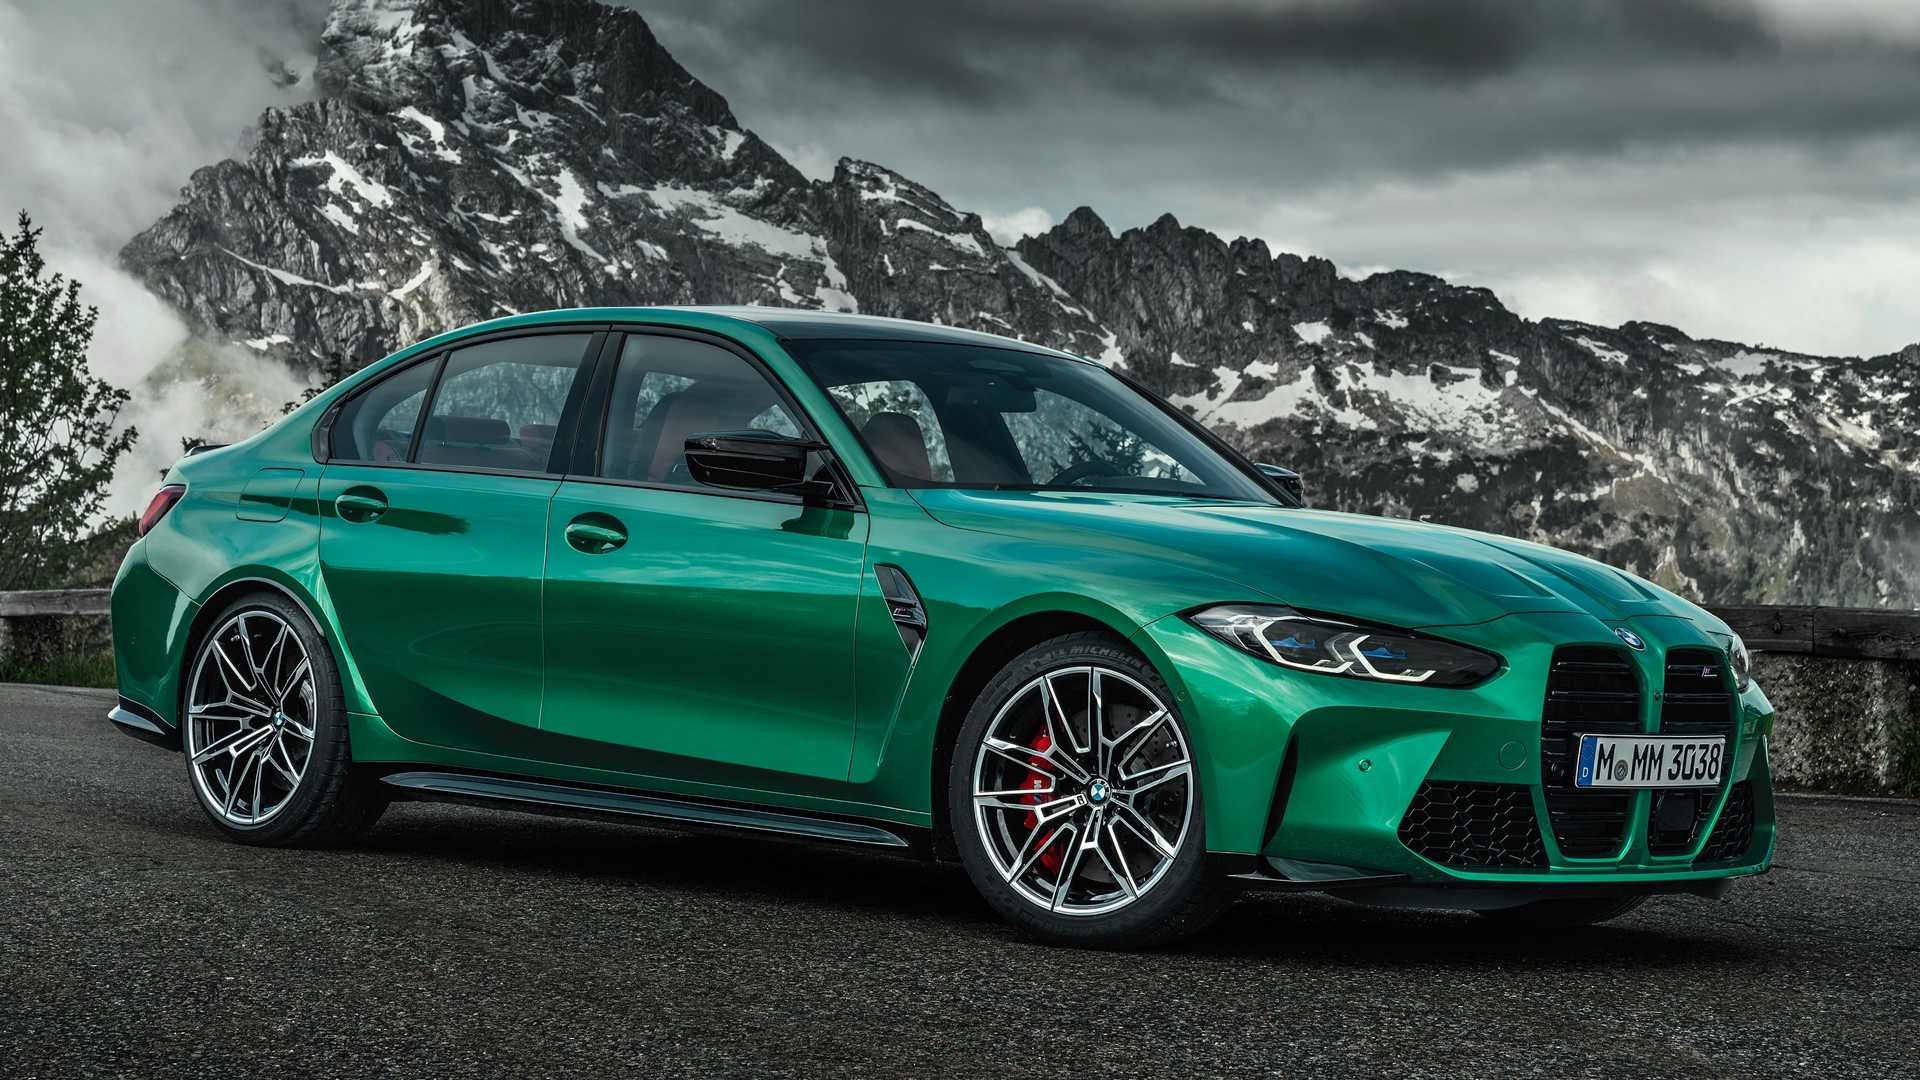 2021 BMW M3 M4 Already Have BMW Individual Color Options 1920x1080